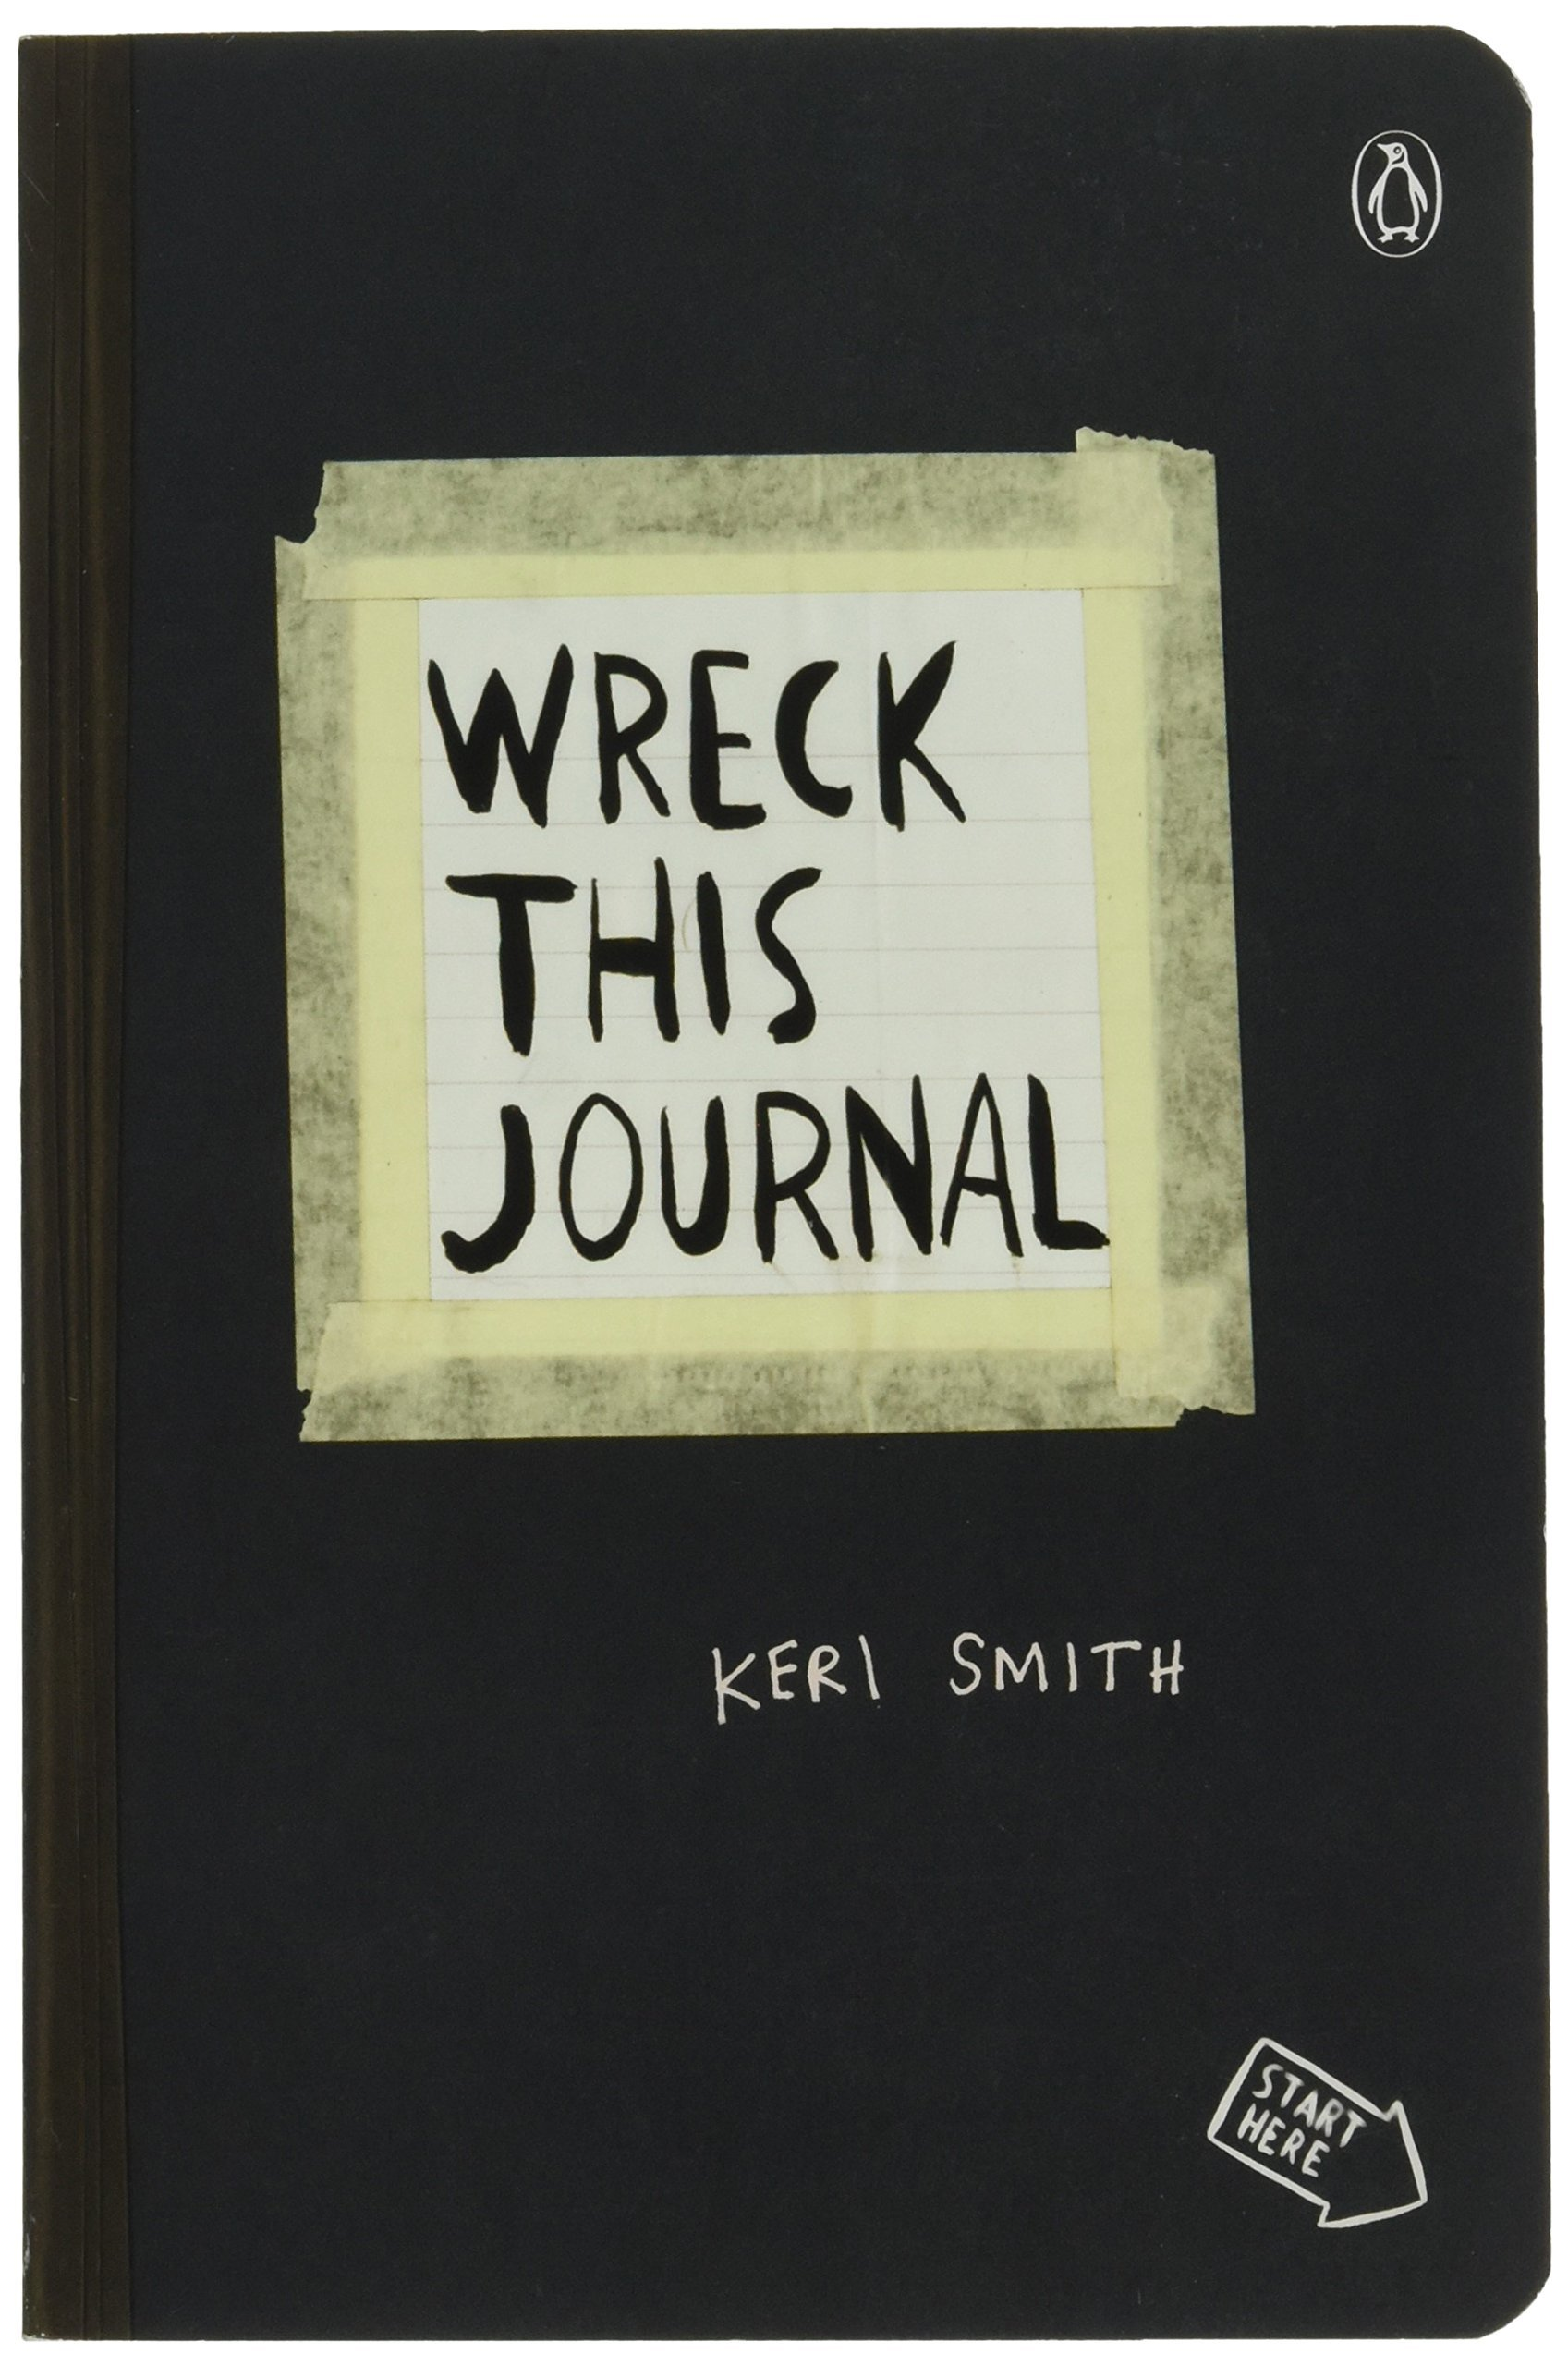 VPEGR Wreck This Journal